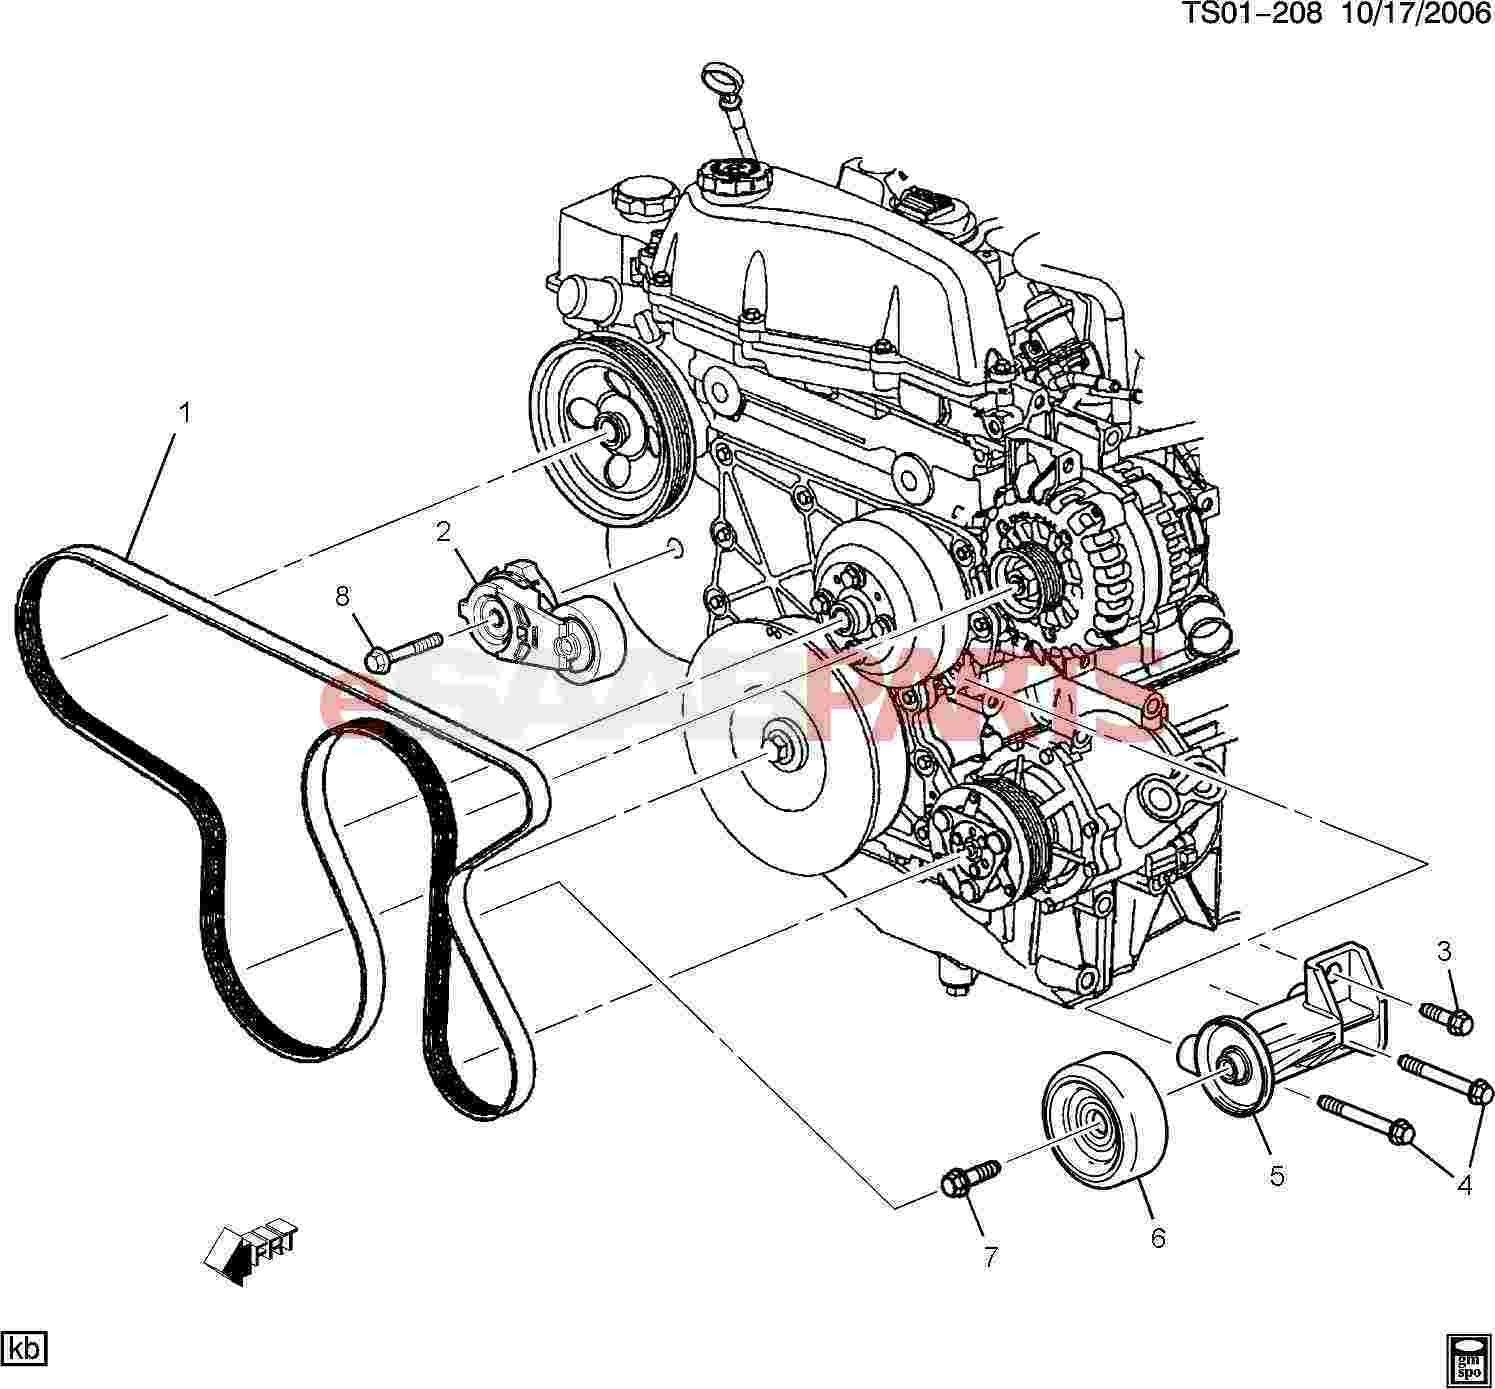 2002 toyota Corolla Engine Diagram ] Saab Bolt Hfh M10x1 5×35 32thd 22 3